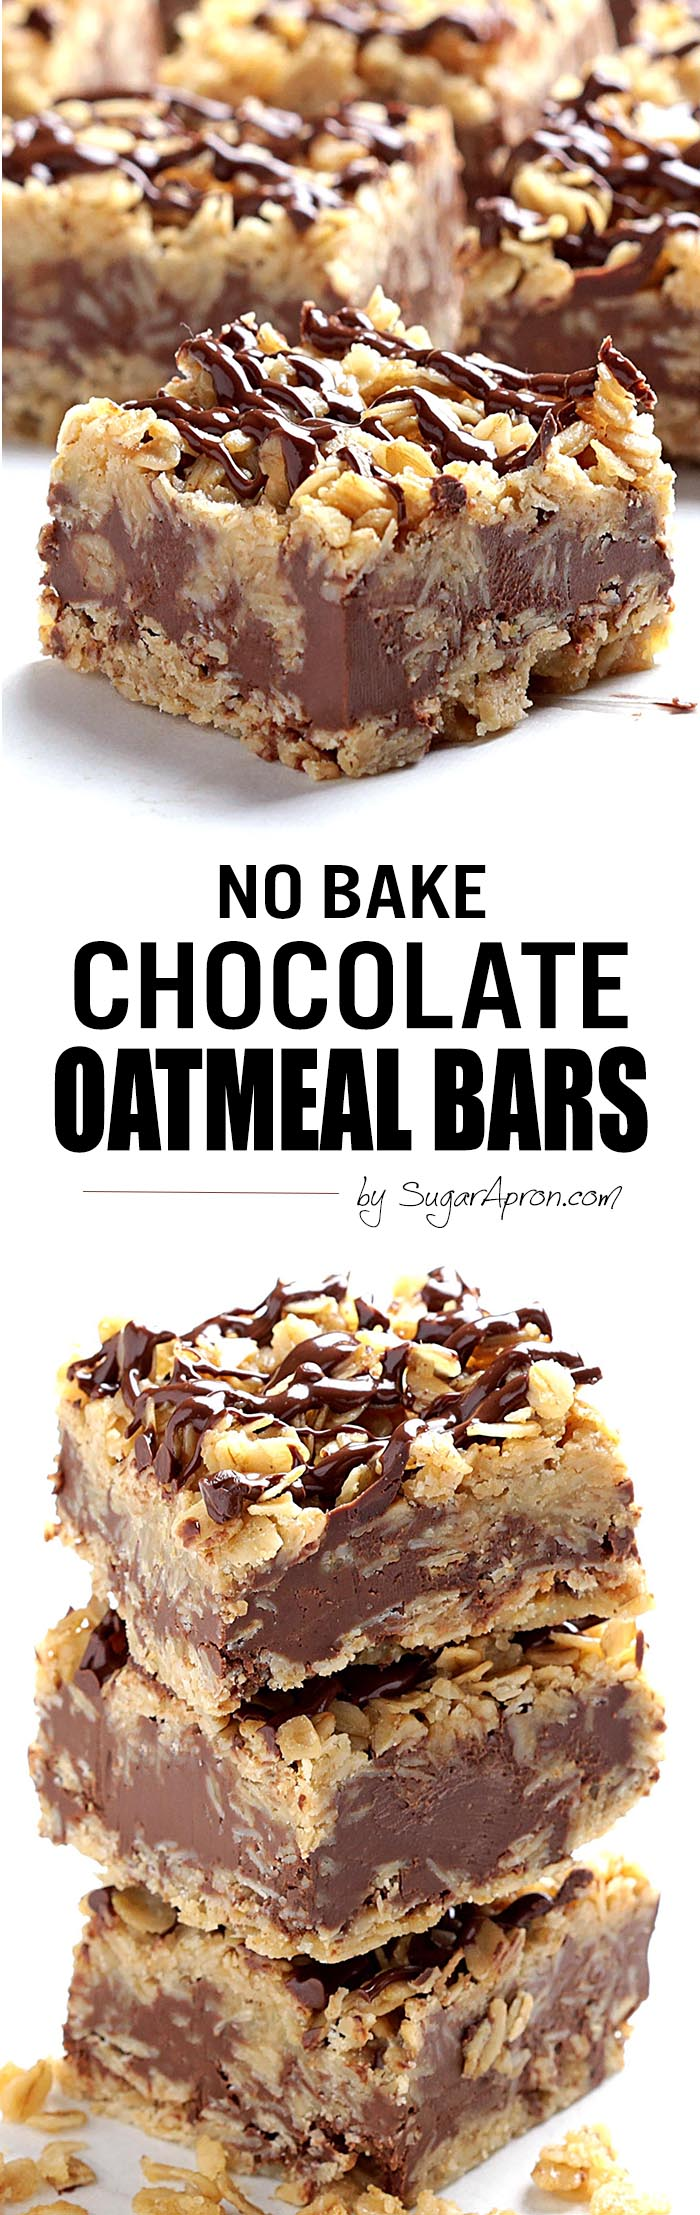 No Bake Chocolate Oatmeal Bars - Sugar Apron